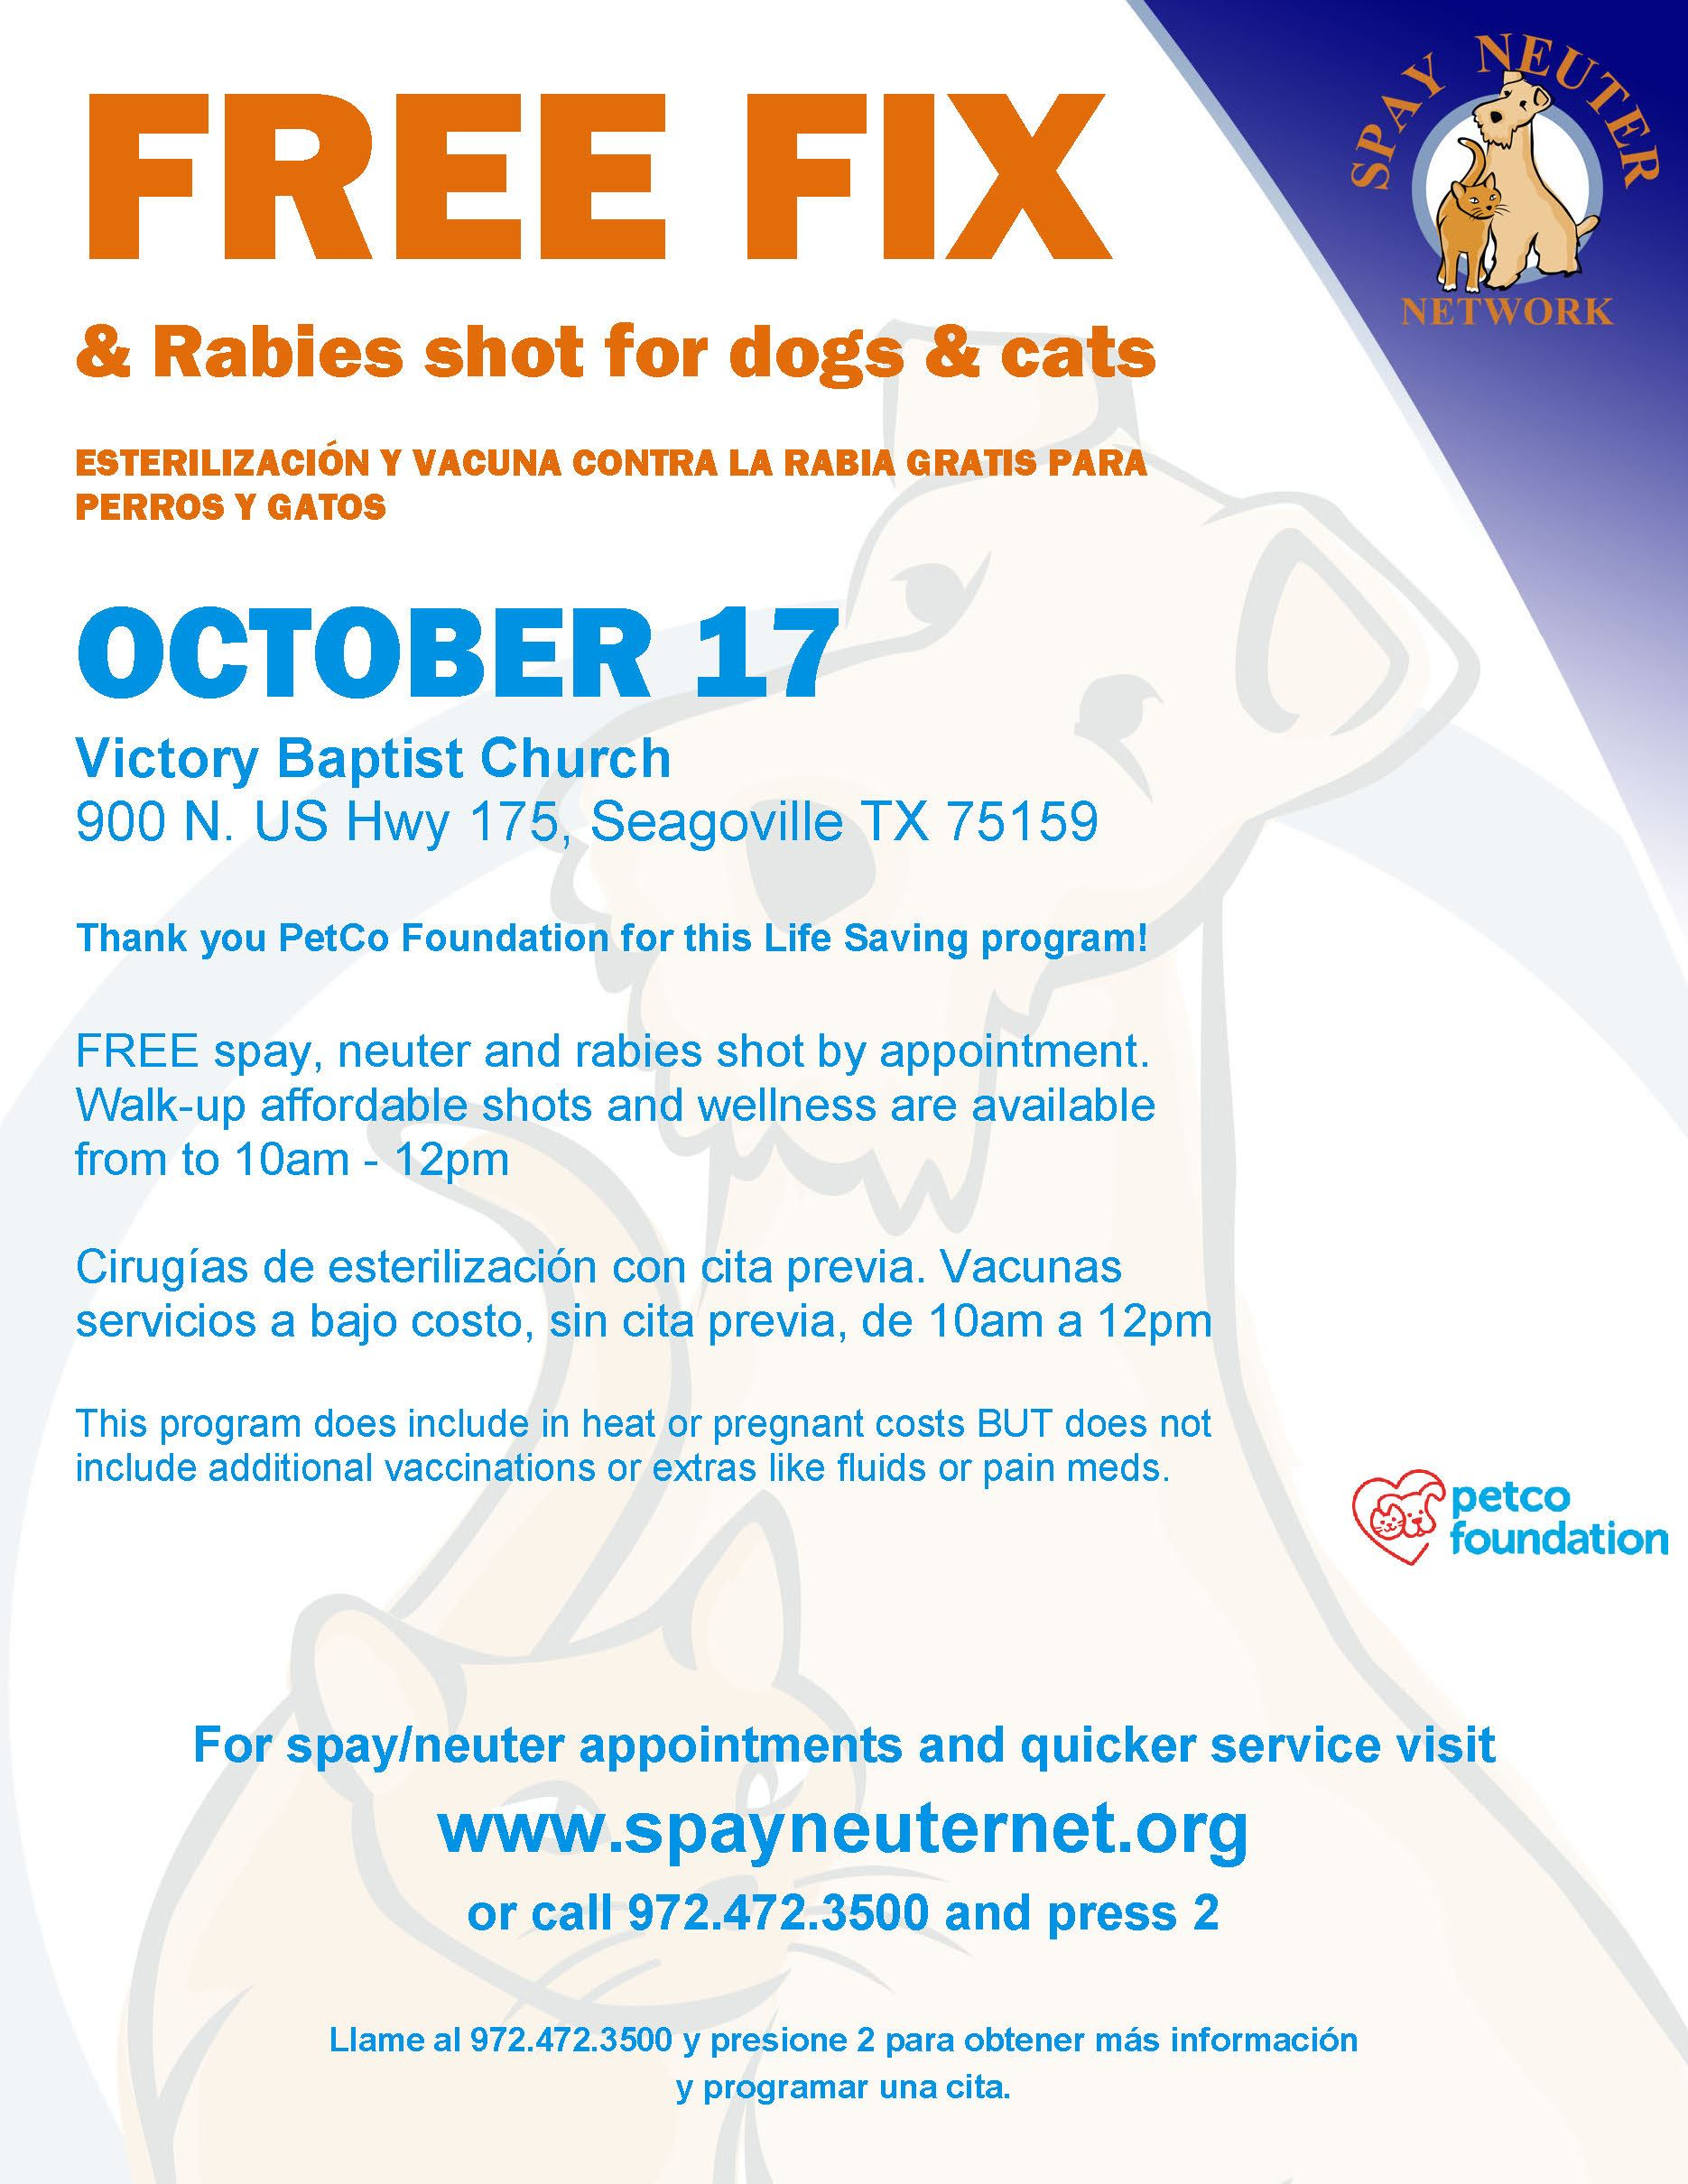 Free Spay, Neuter and Rabies Vaccination Flyer